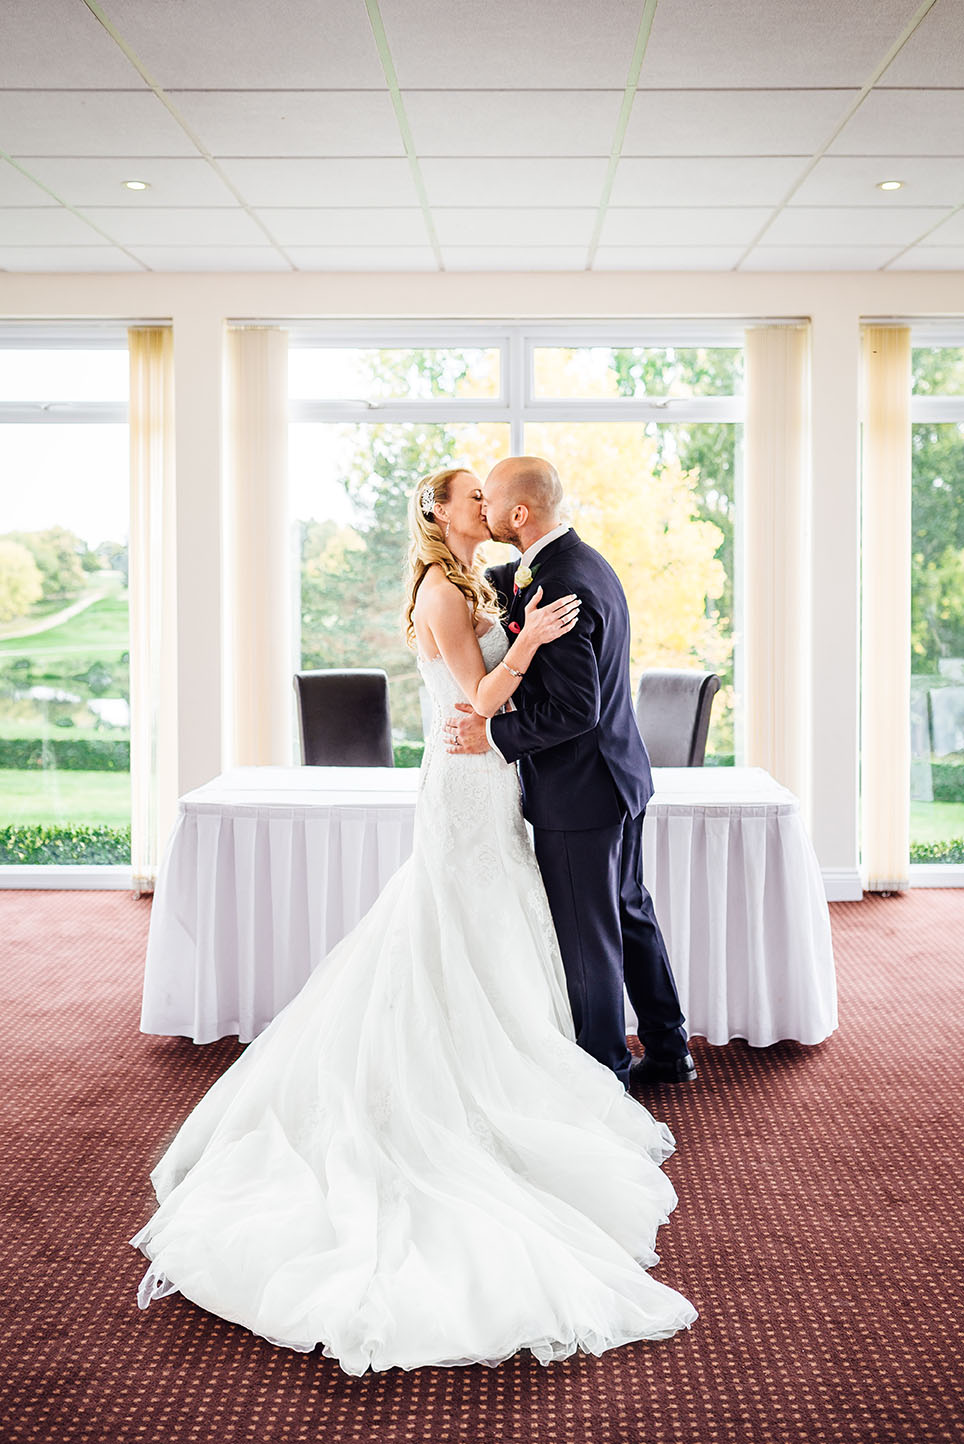 Stoke-by-Nayland Wedding Photographer | Wedding Photographer in Ipswich, Suffolk